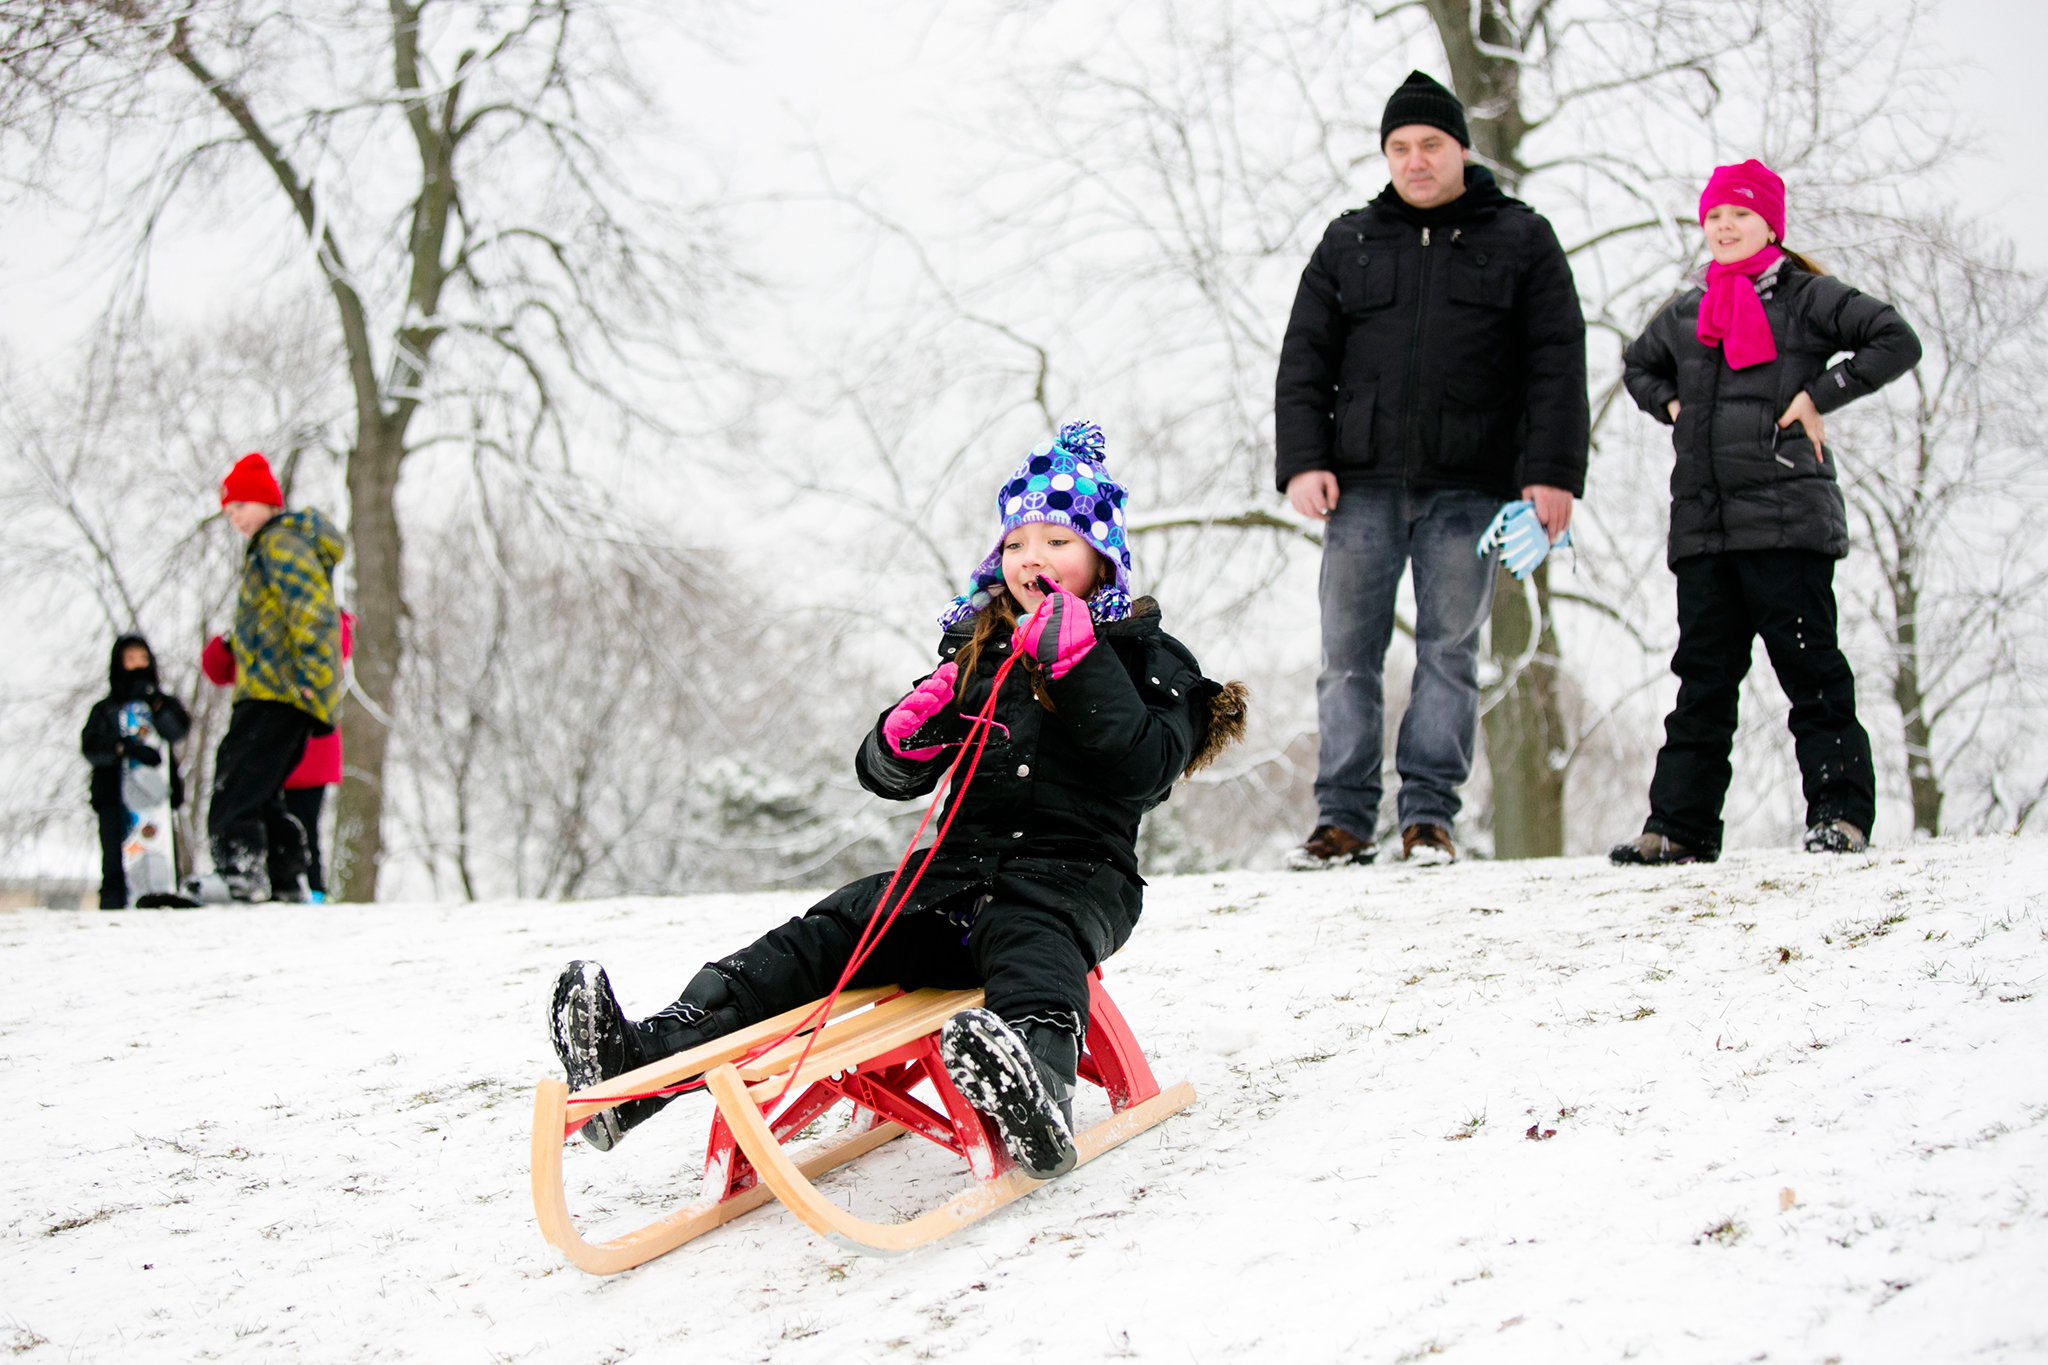 Top Sledding Hills - The best sledding hills in north america